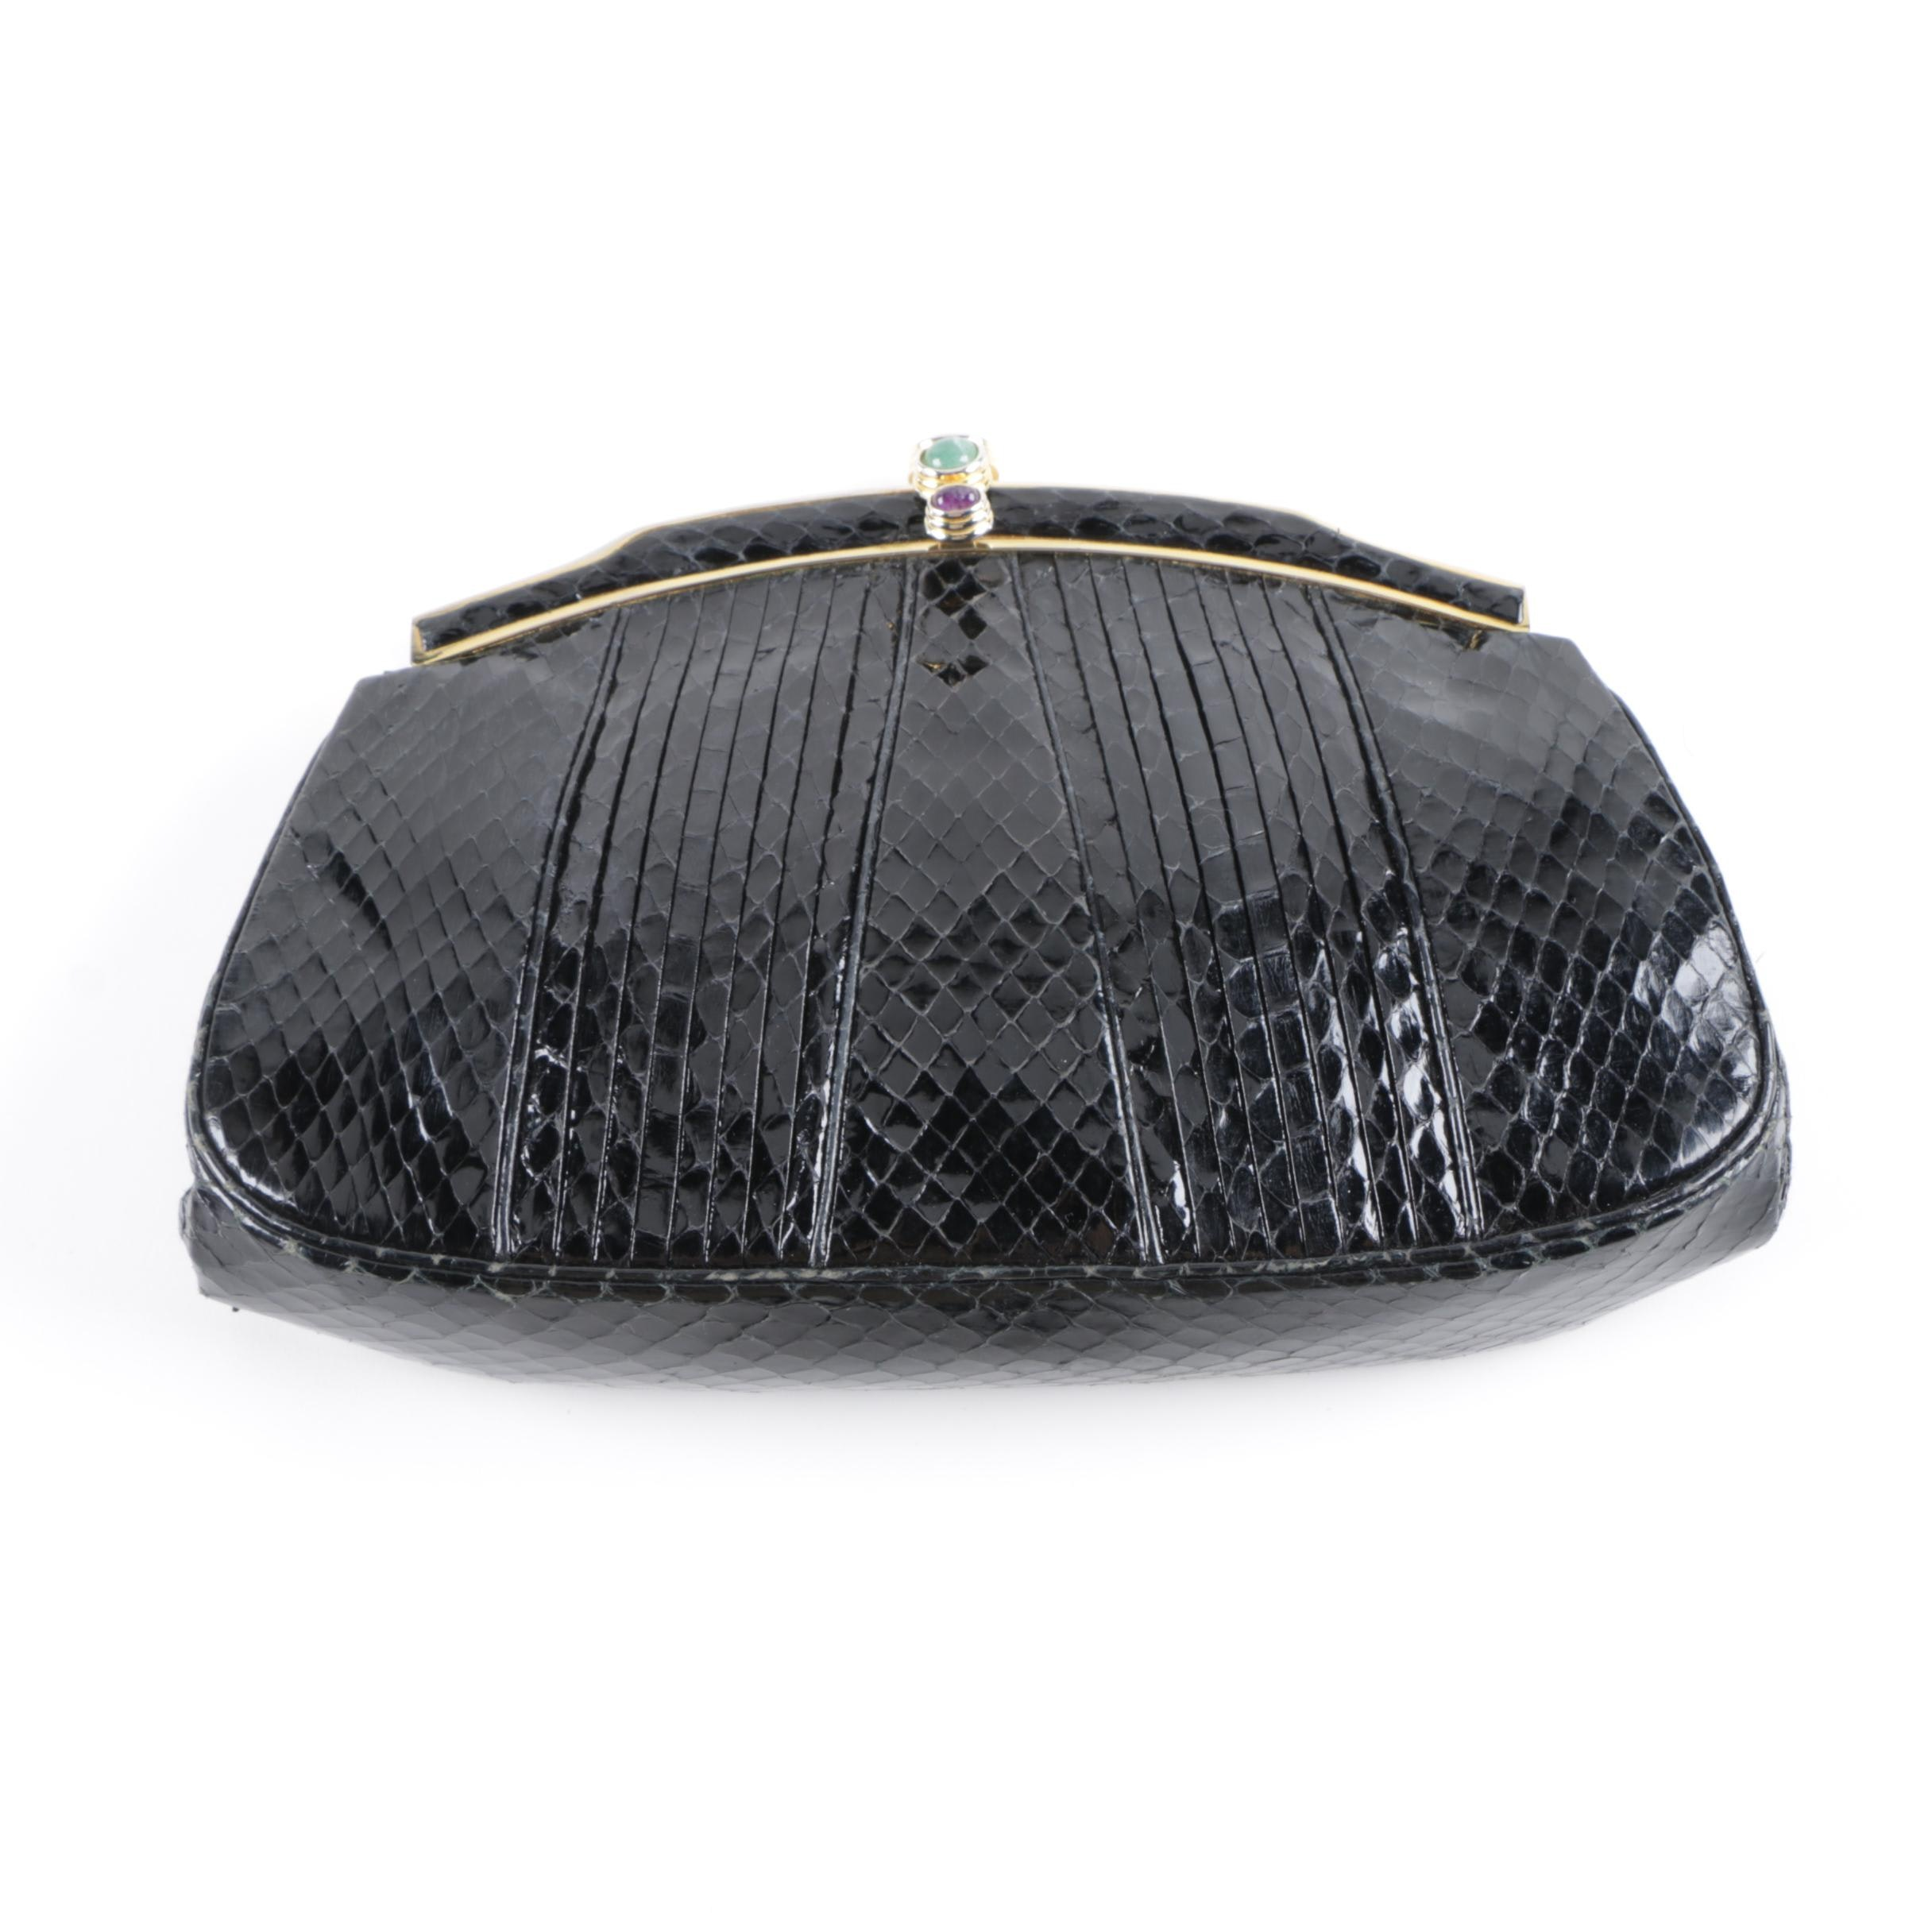 Judith Leiber Black Snakeskin Clutch Bag with Semi-Precious Stones